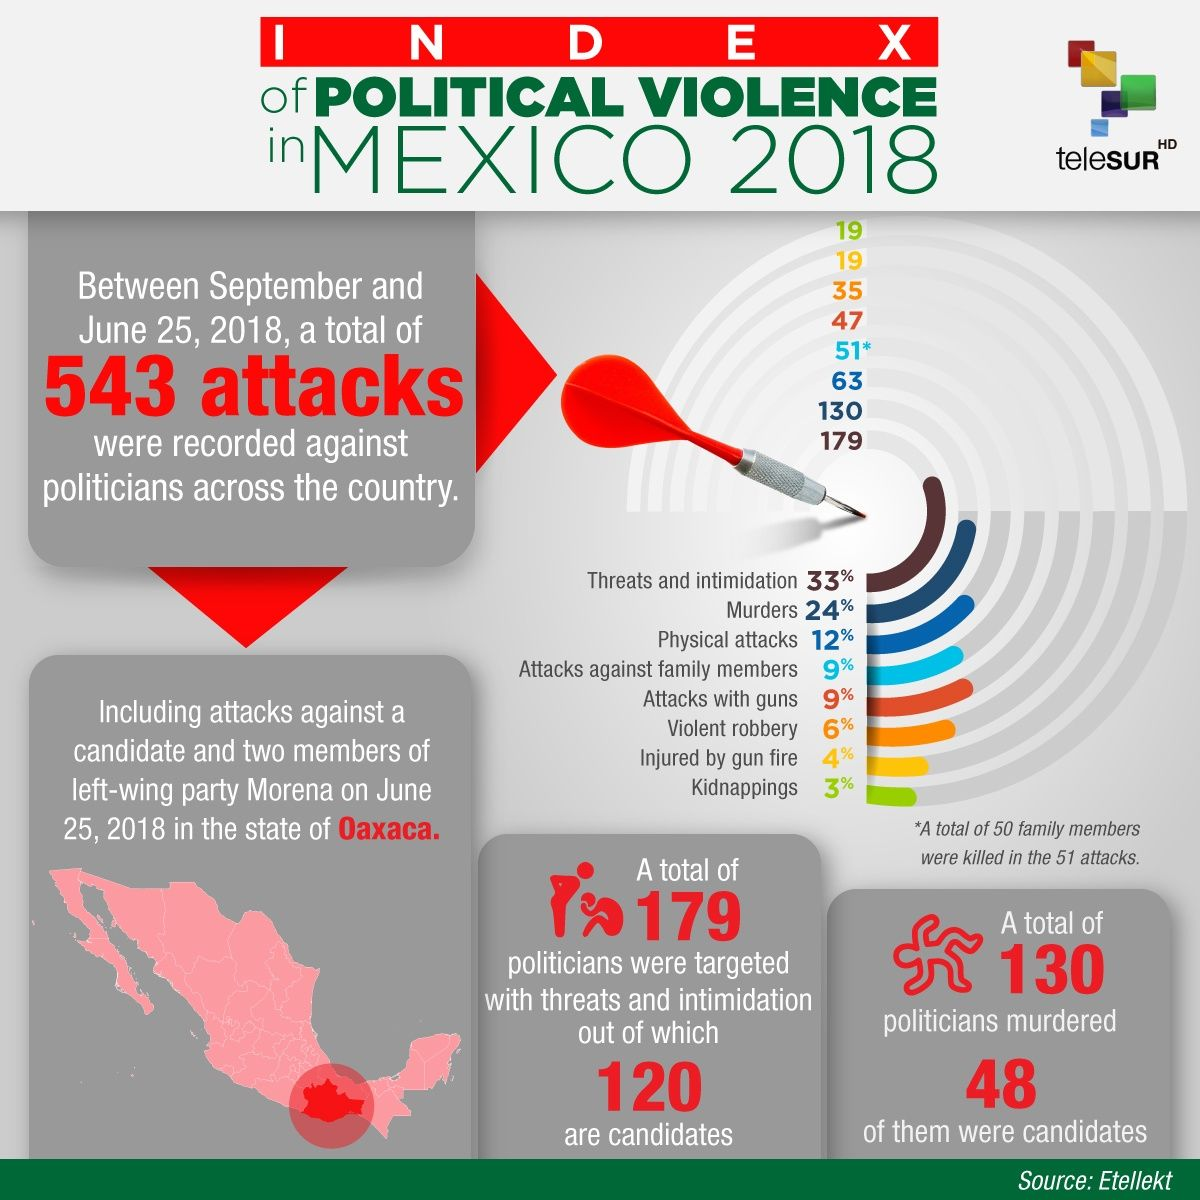 Index of Political Violence In Mexico 2018